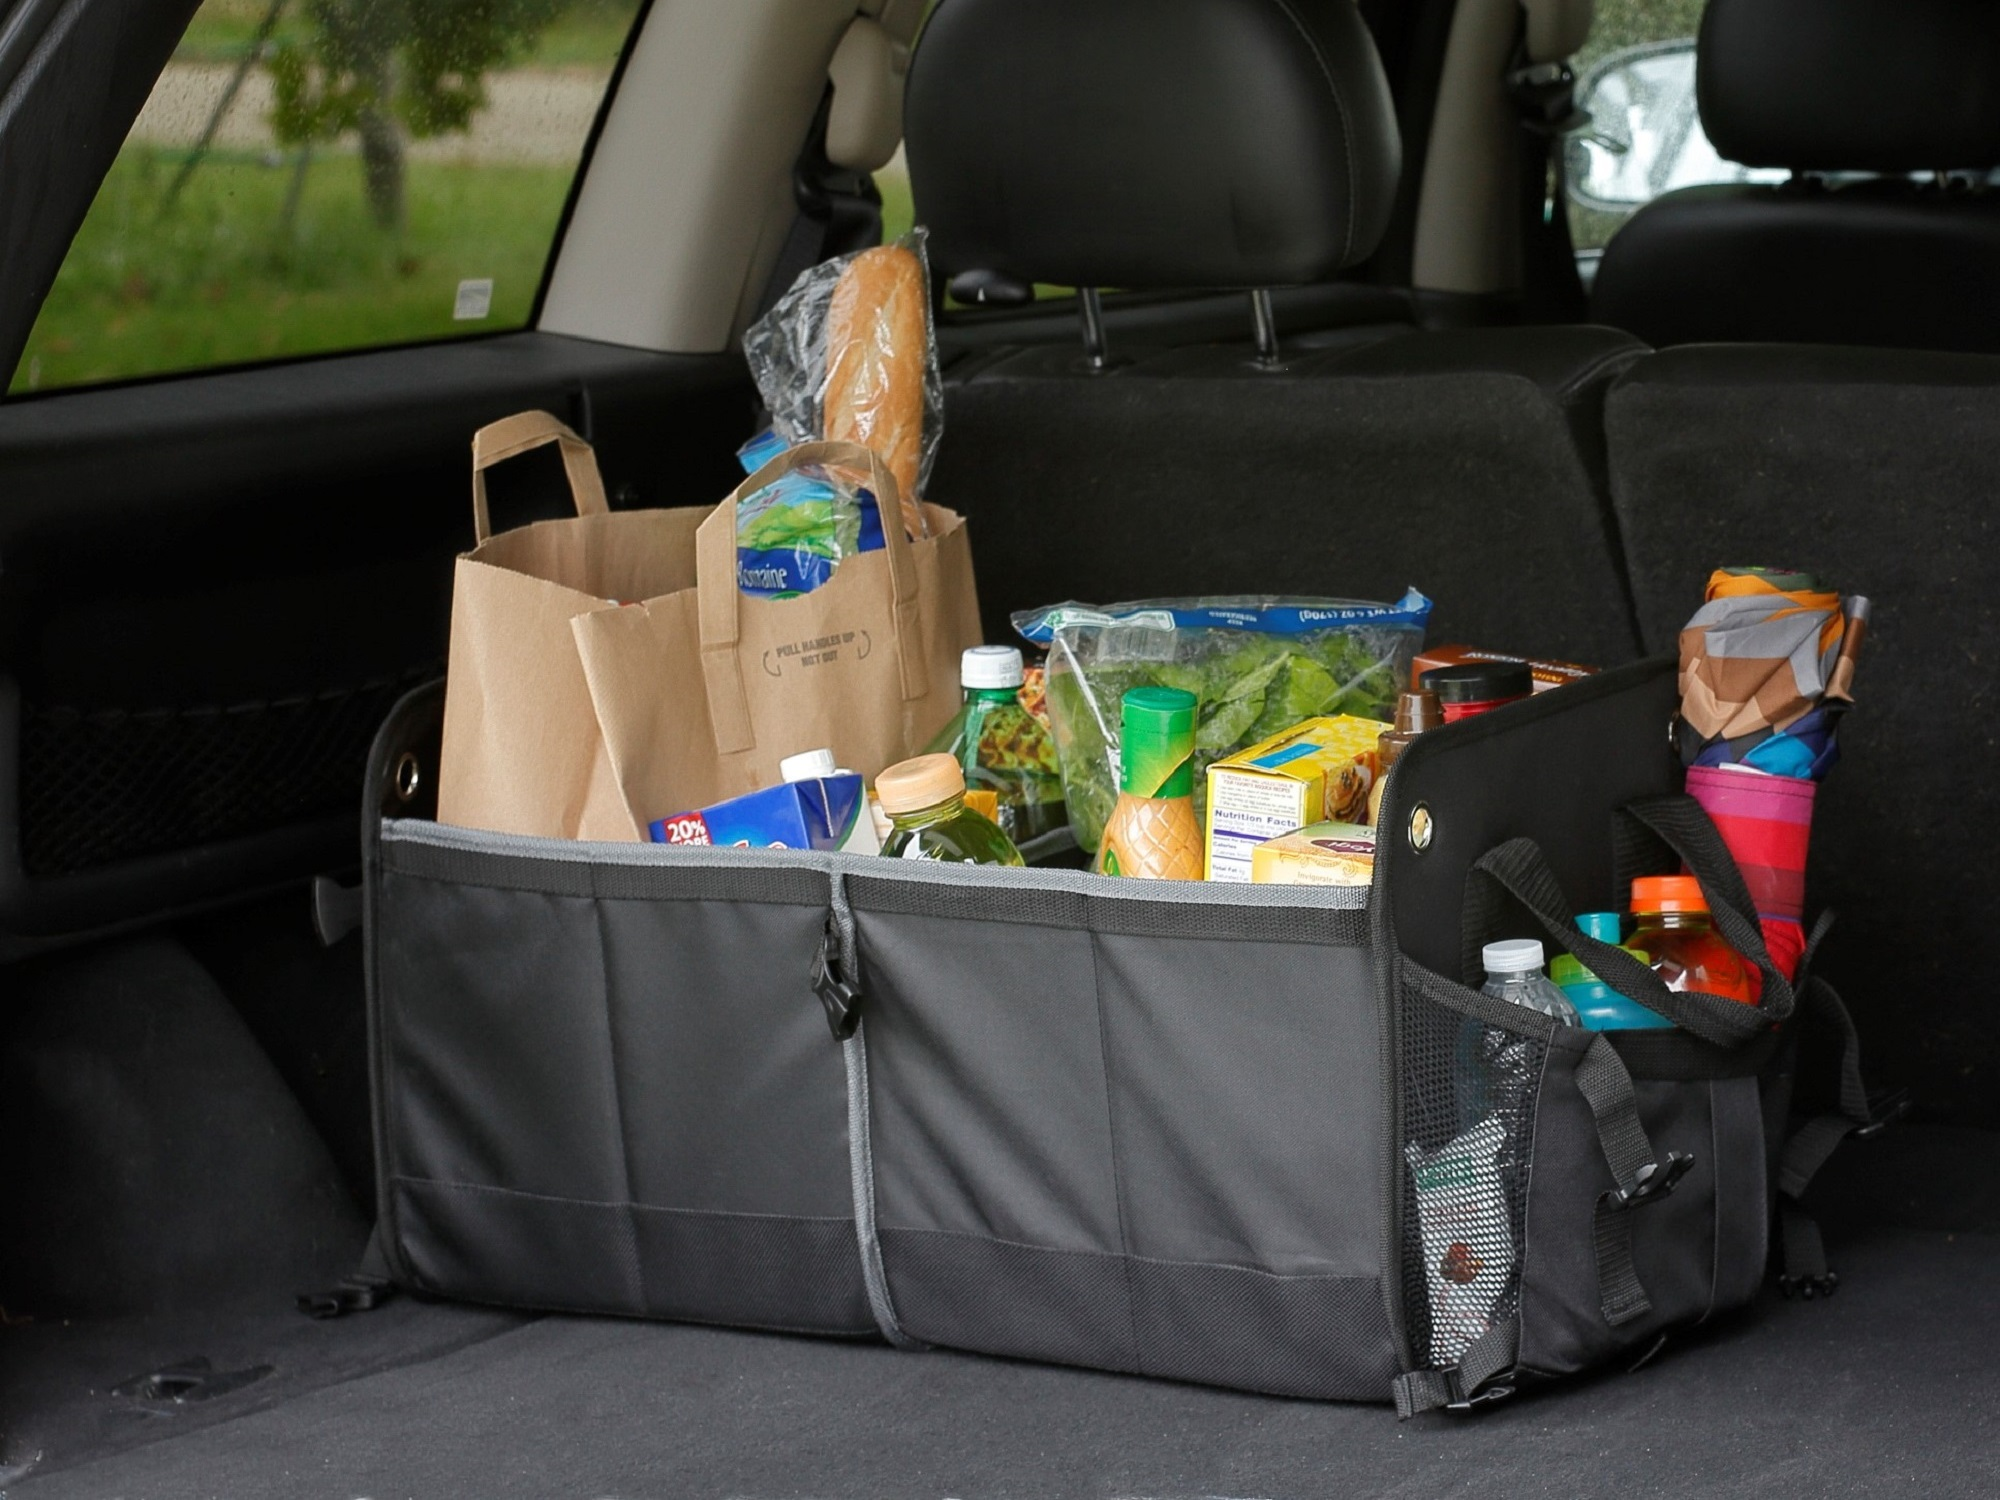 Trunk organizer with groceries